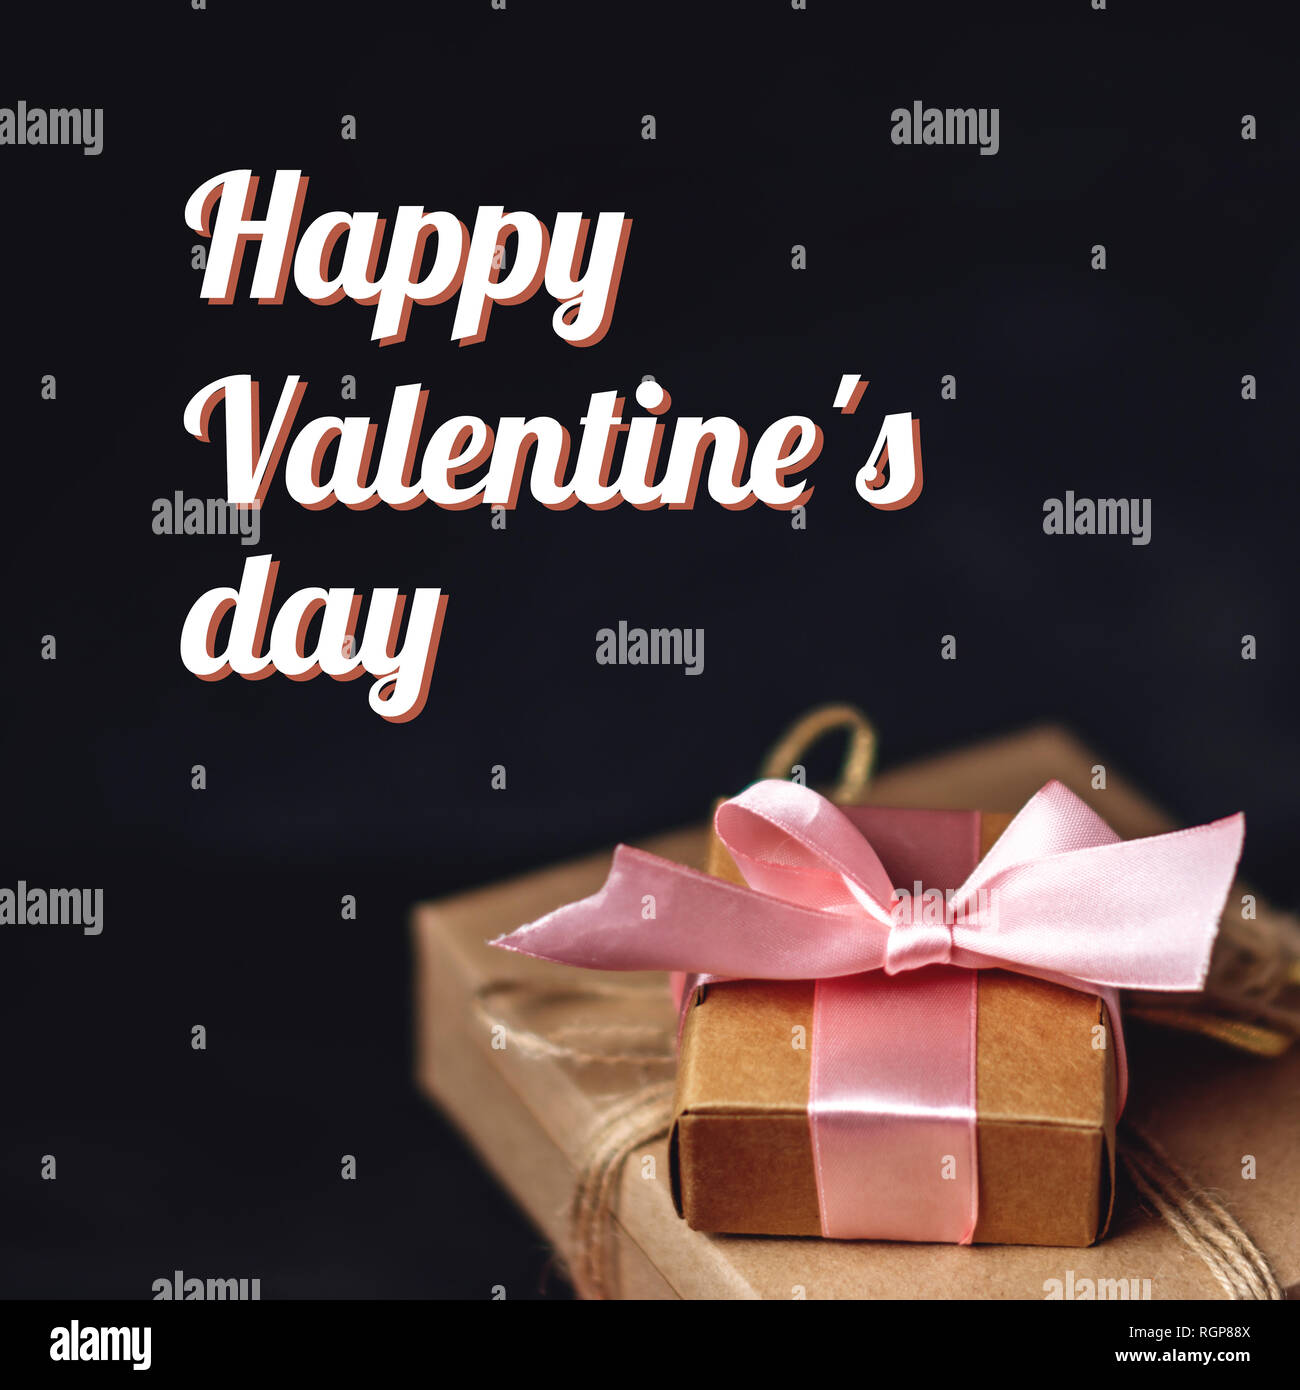 Holiday gift boxes Packed in crafting paper on dark wooden background. Square card Happy Valentine's day with text - Stock Image